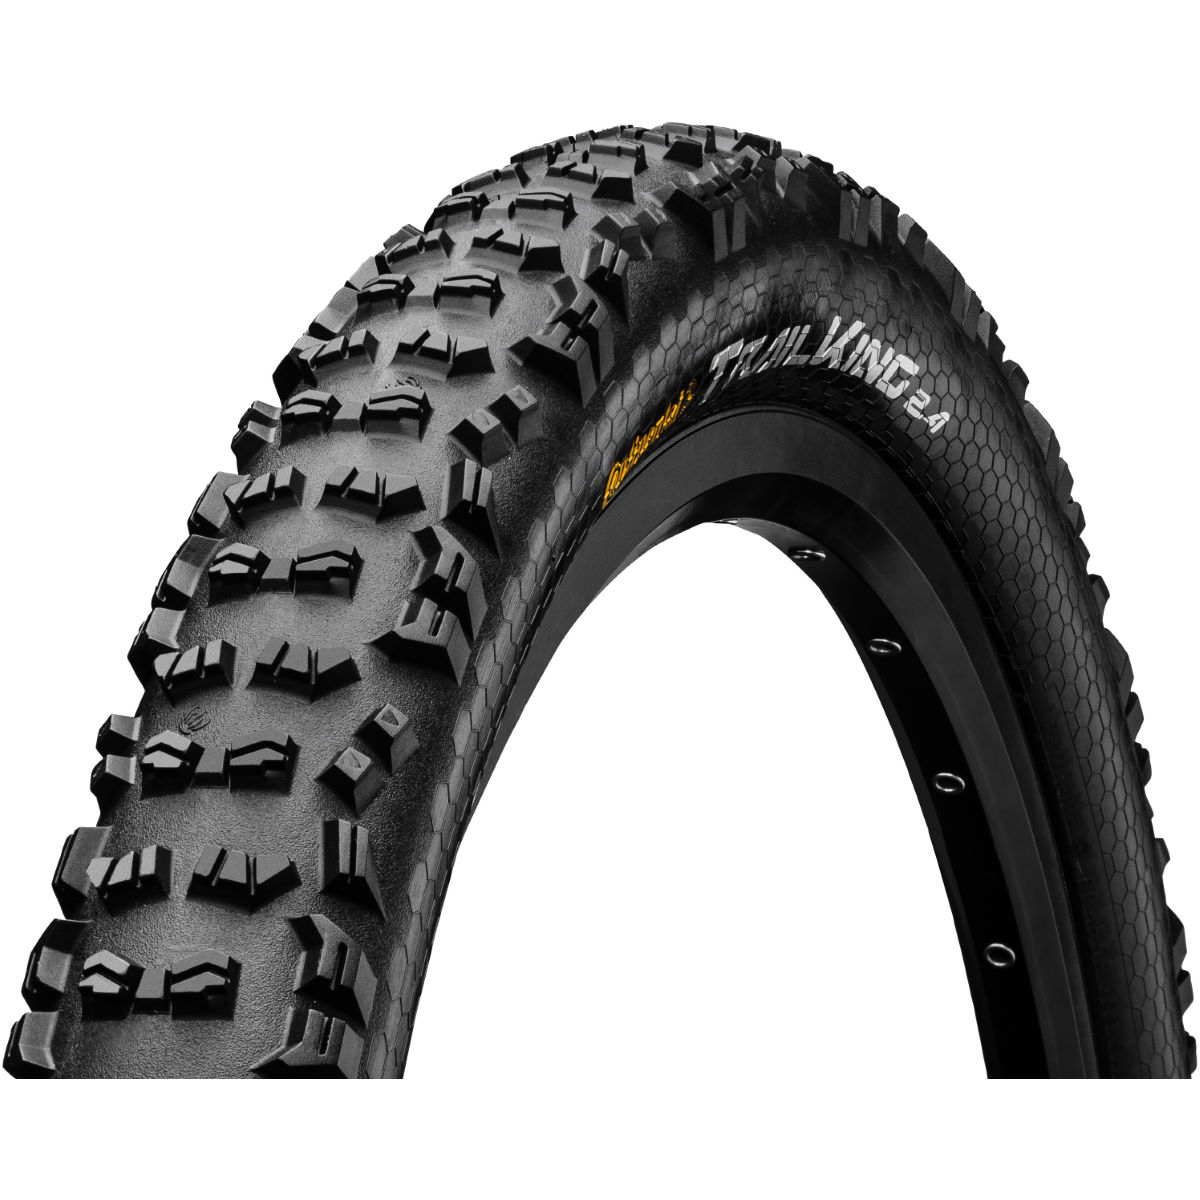 Pneu VTT Continental Trail King (souple, Protection Apex, 2018) - Noir